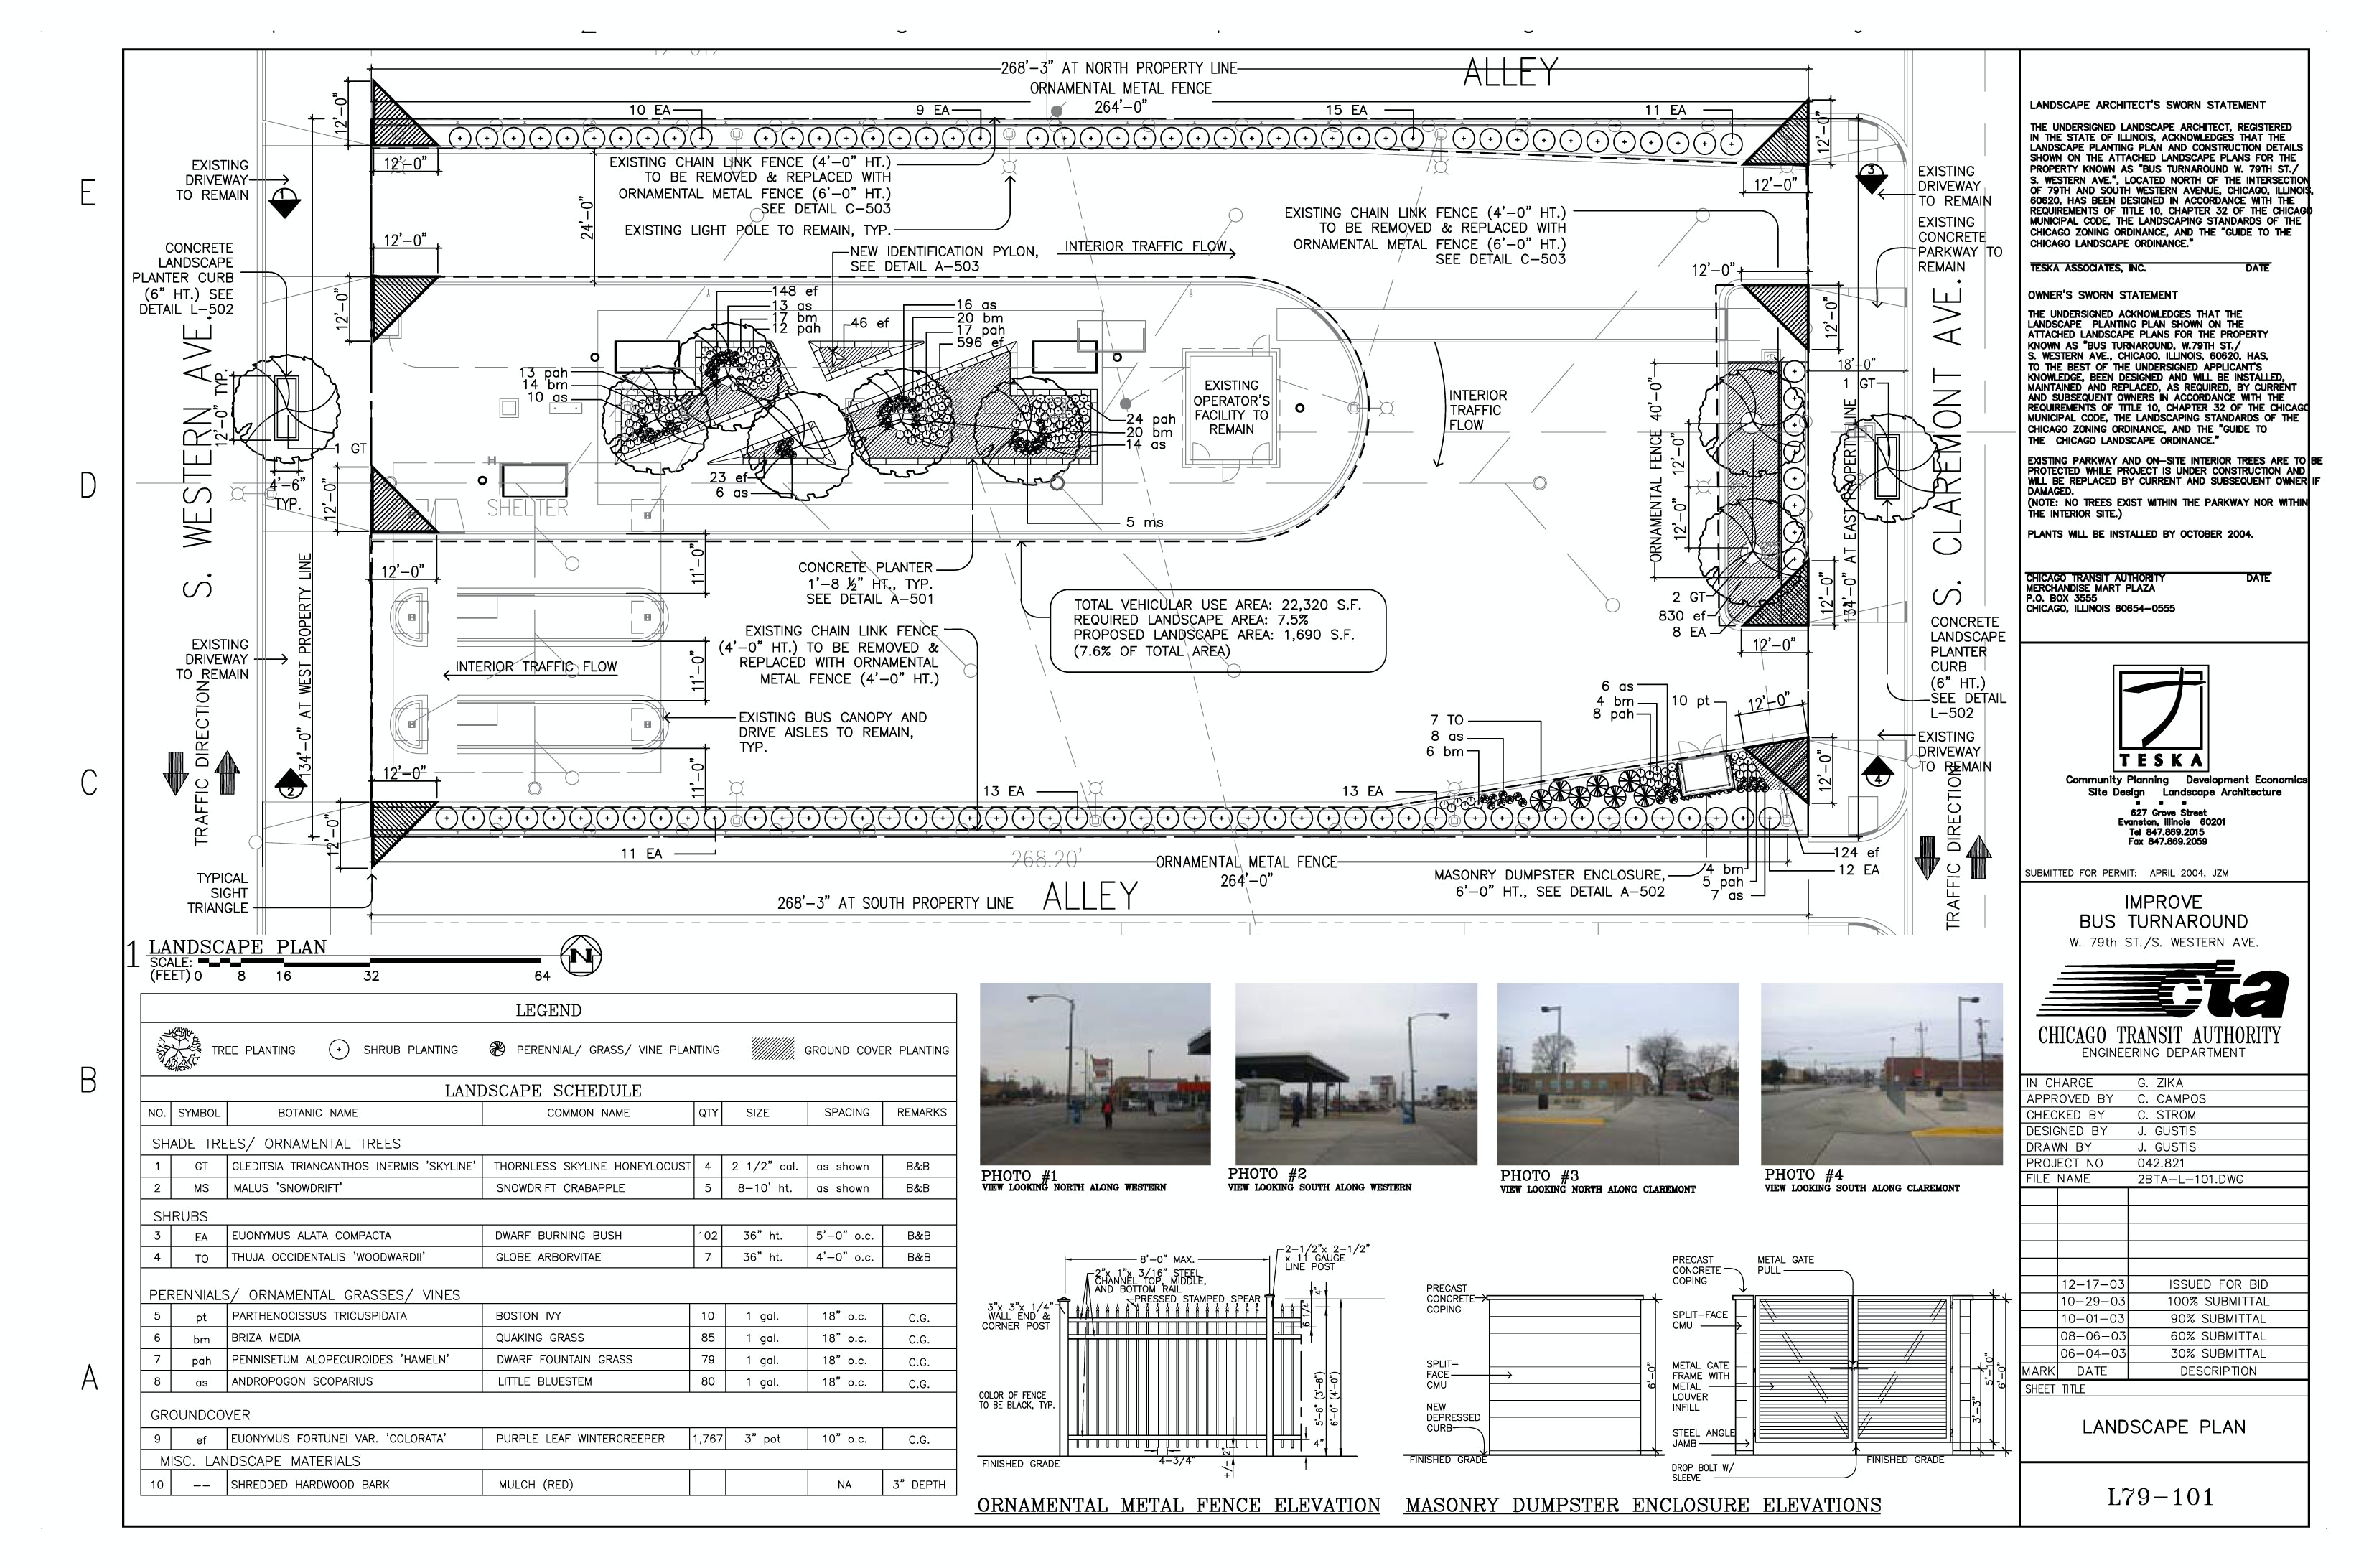 fvg1owfkkhvo3gs9?auto=compress%2Cformat 79th western bus turnaround jeffrey gustis archinect Basic Electrical Wiring Diagrams at webbmarketing.co